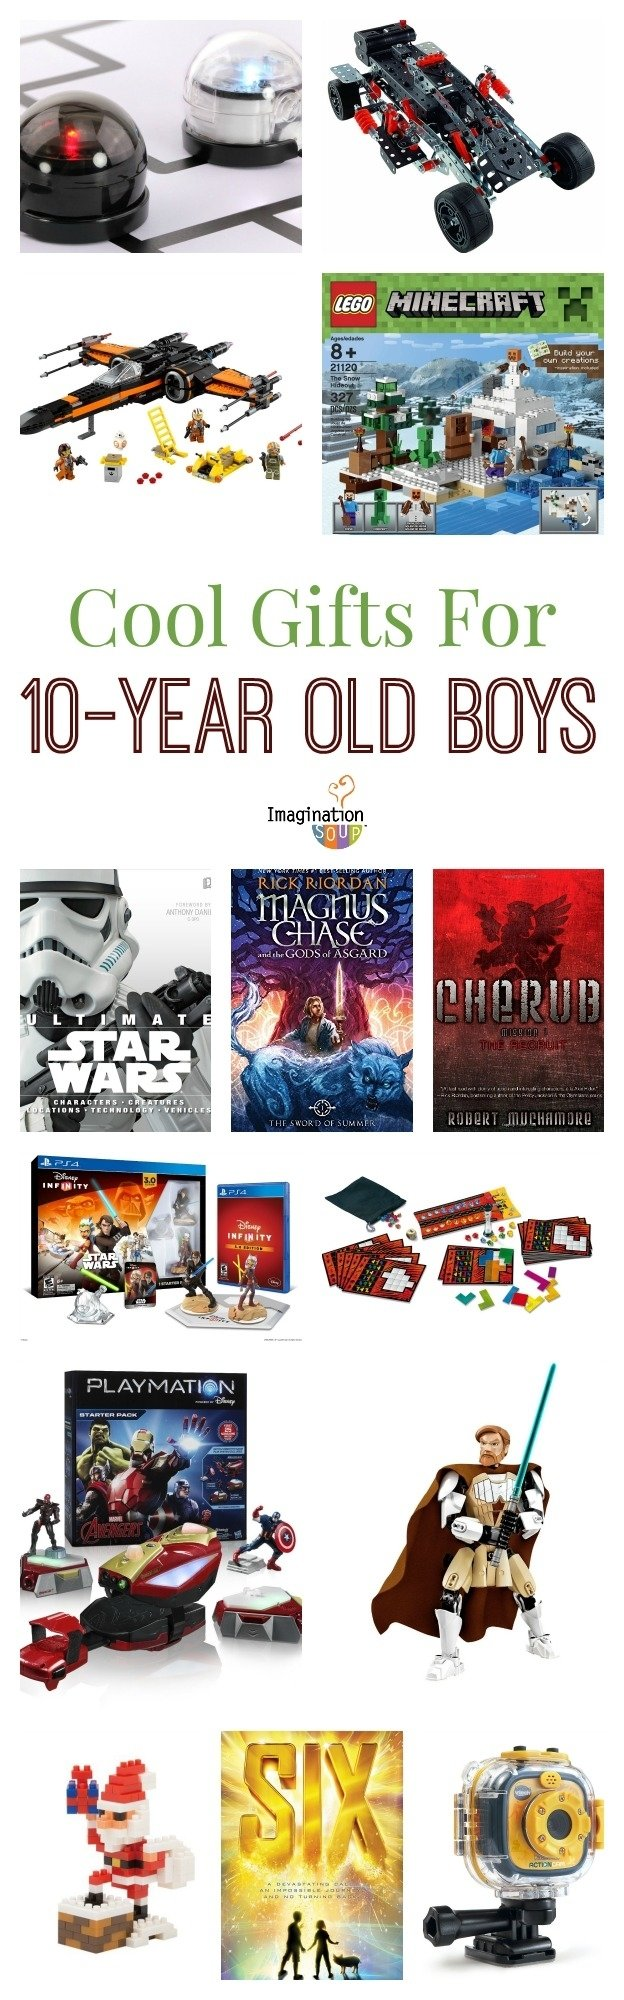 10 Beautiful Gift Ideas 12 Year Old Boy gifts for 10 year old boys imagination soup 5